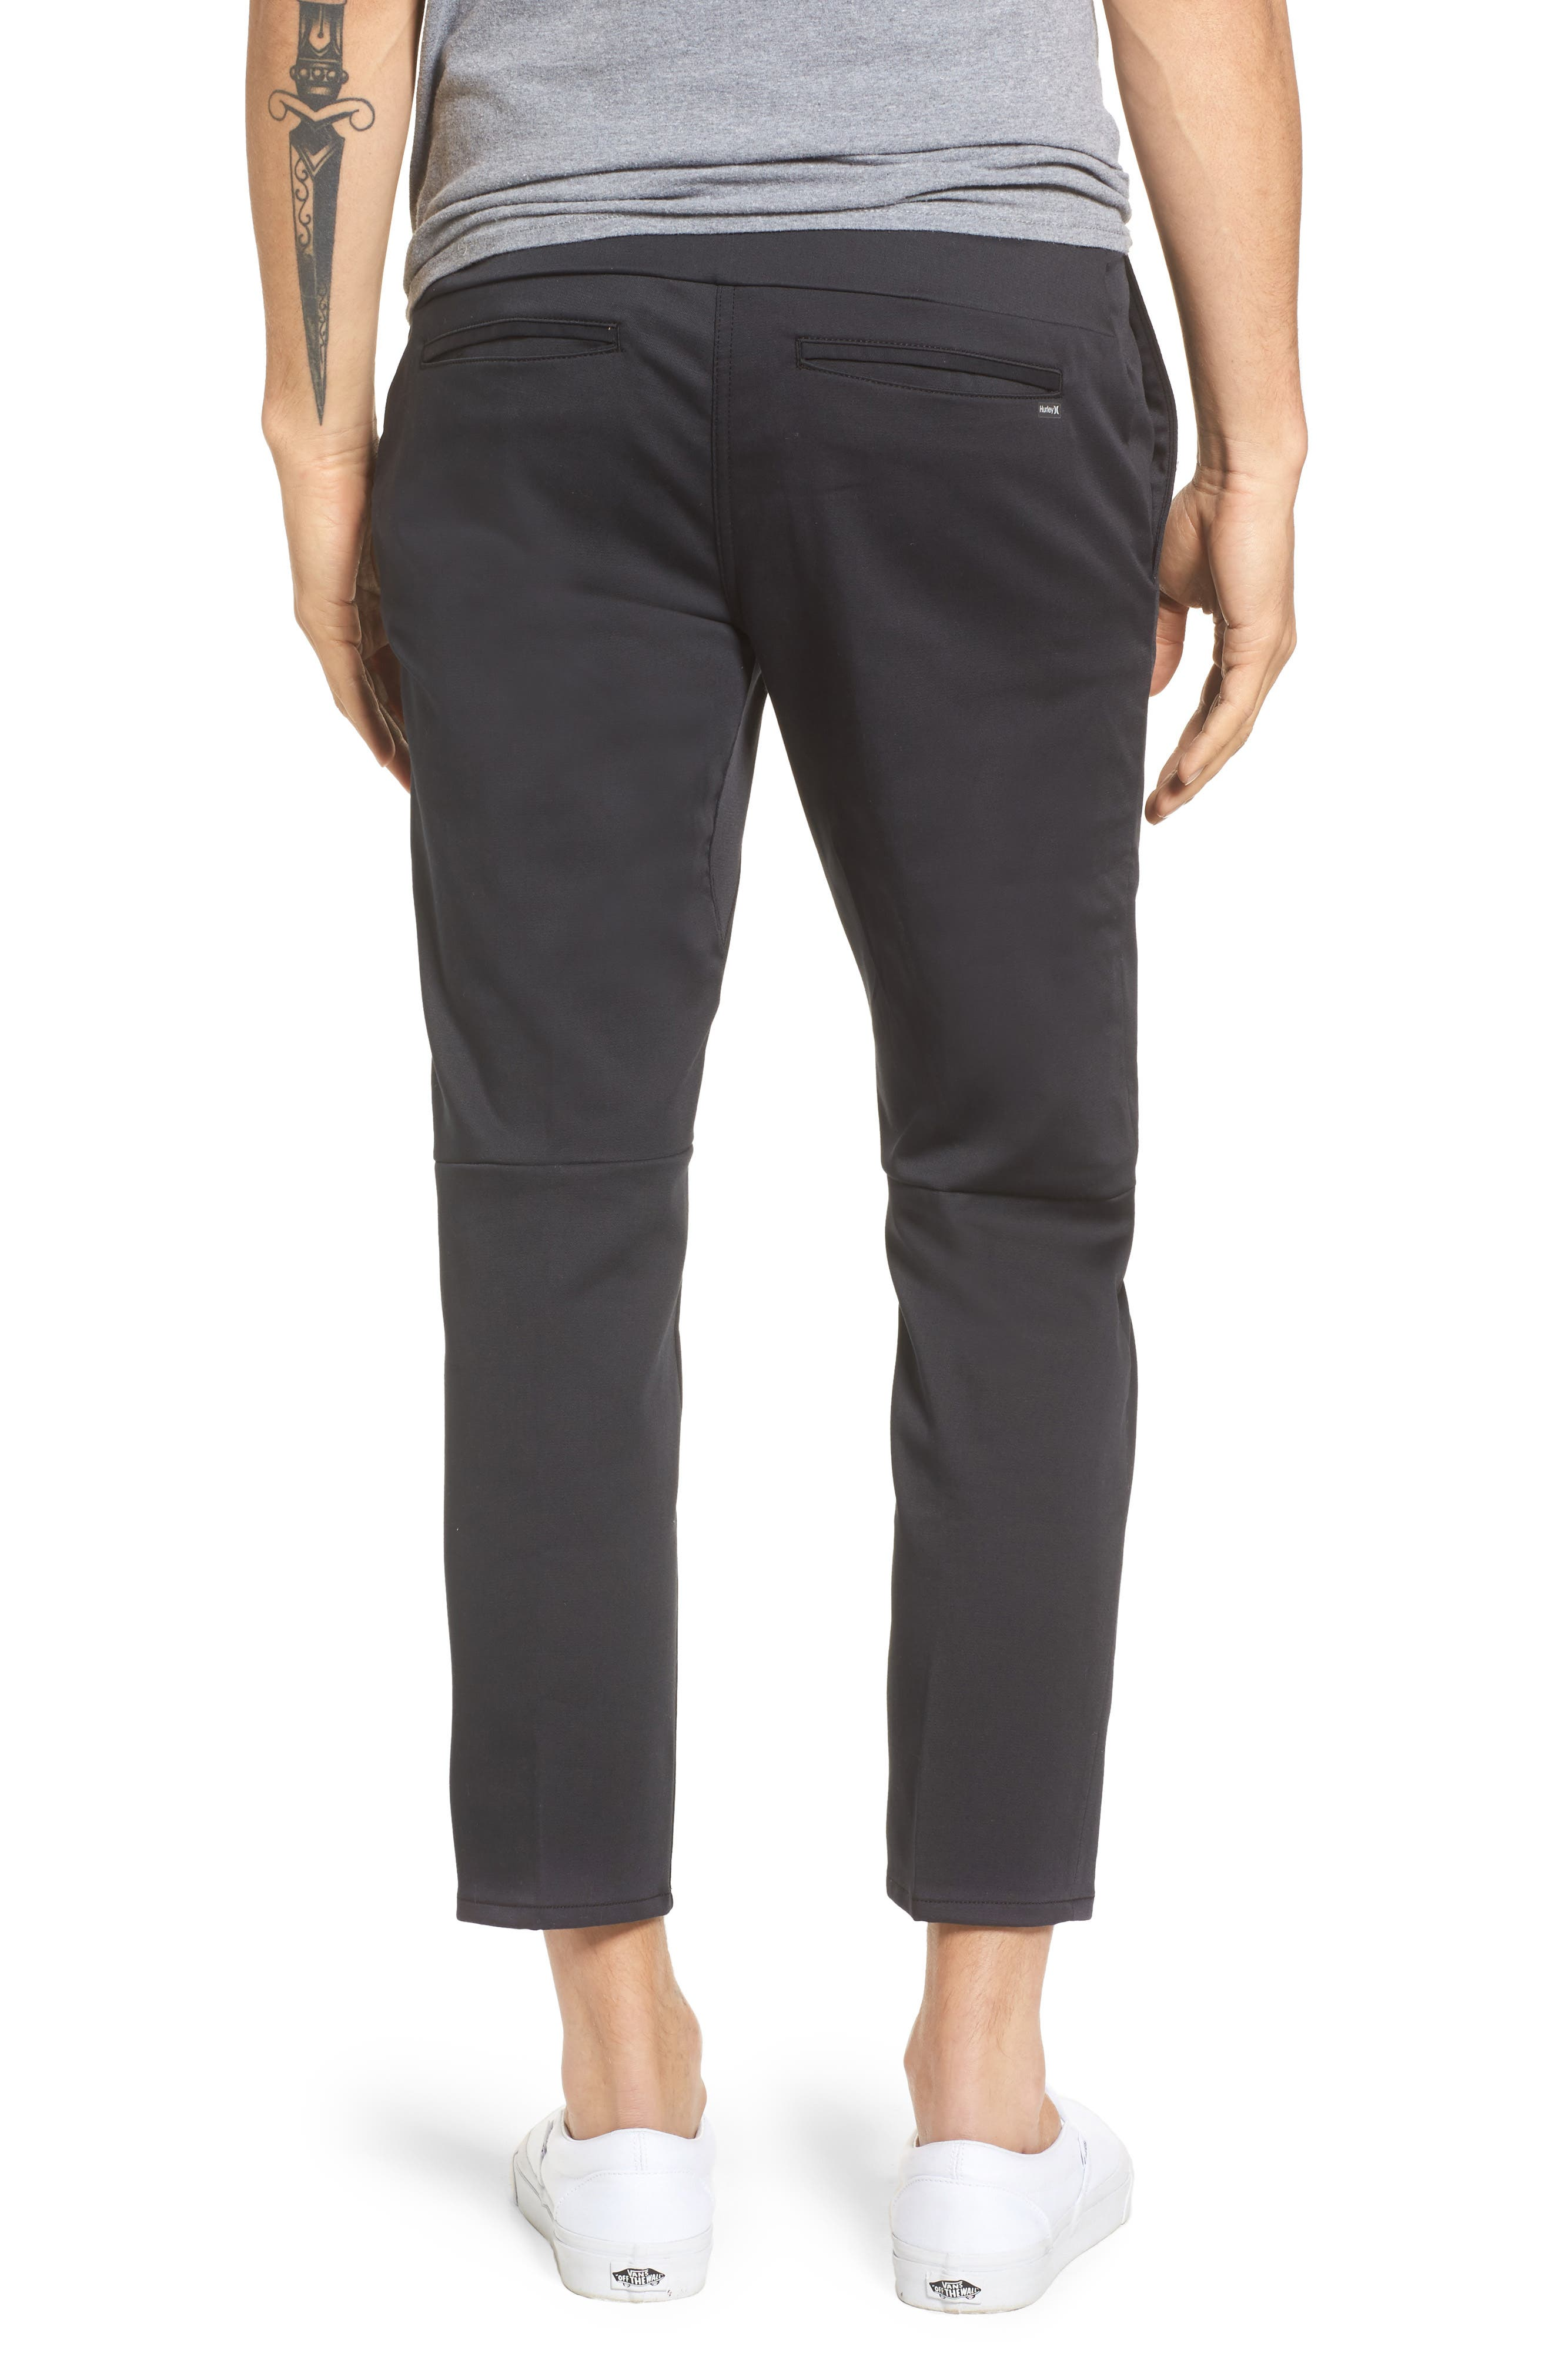 Covert Slim Fit Crop Pants,                             Alternate thumbnail 2, color,                             010